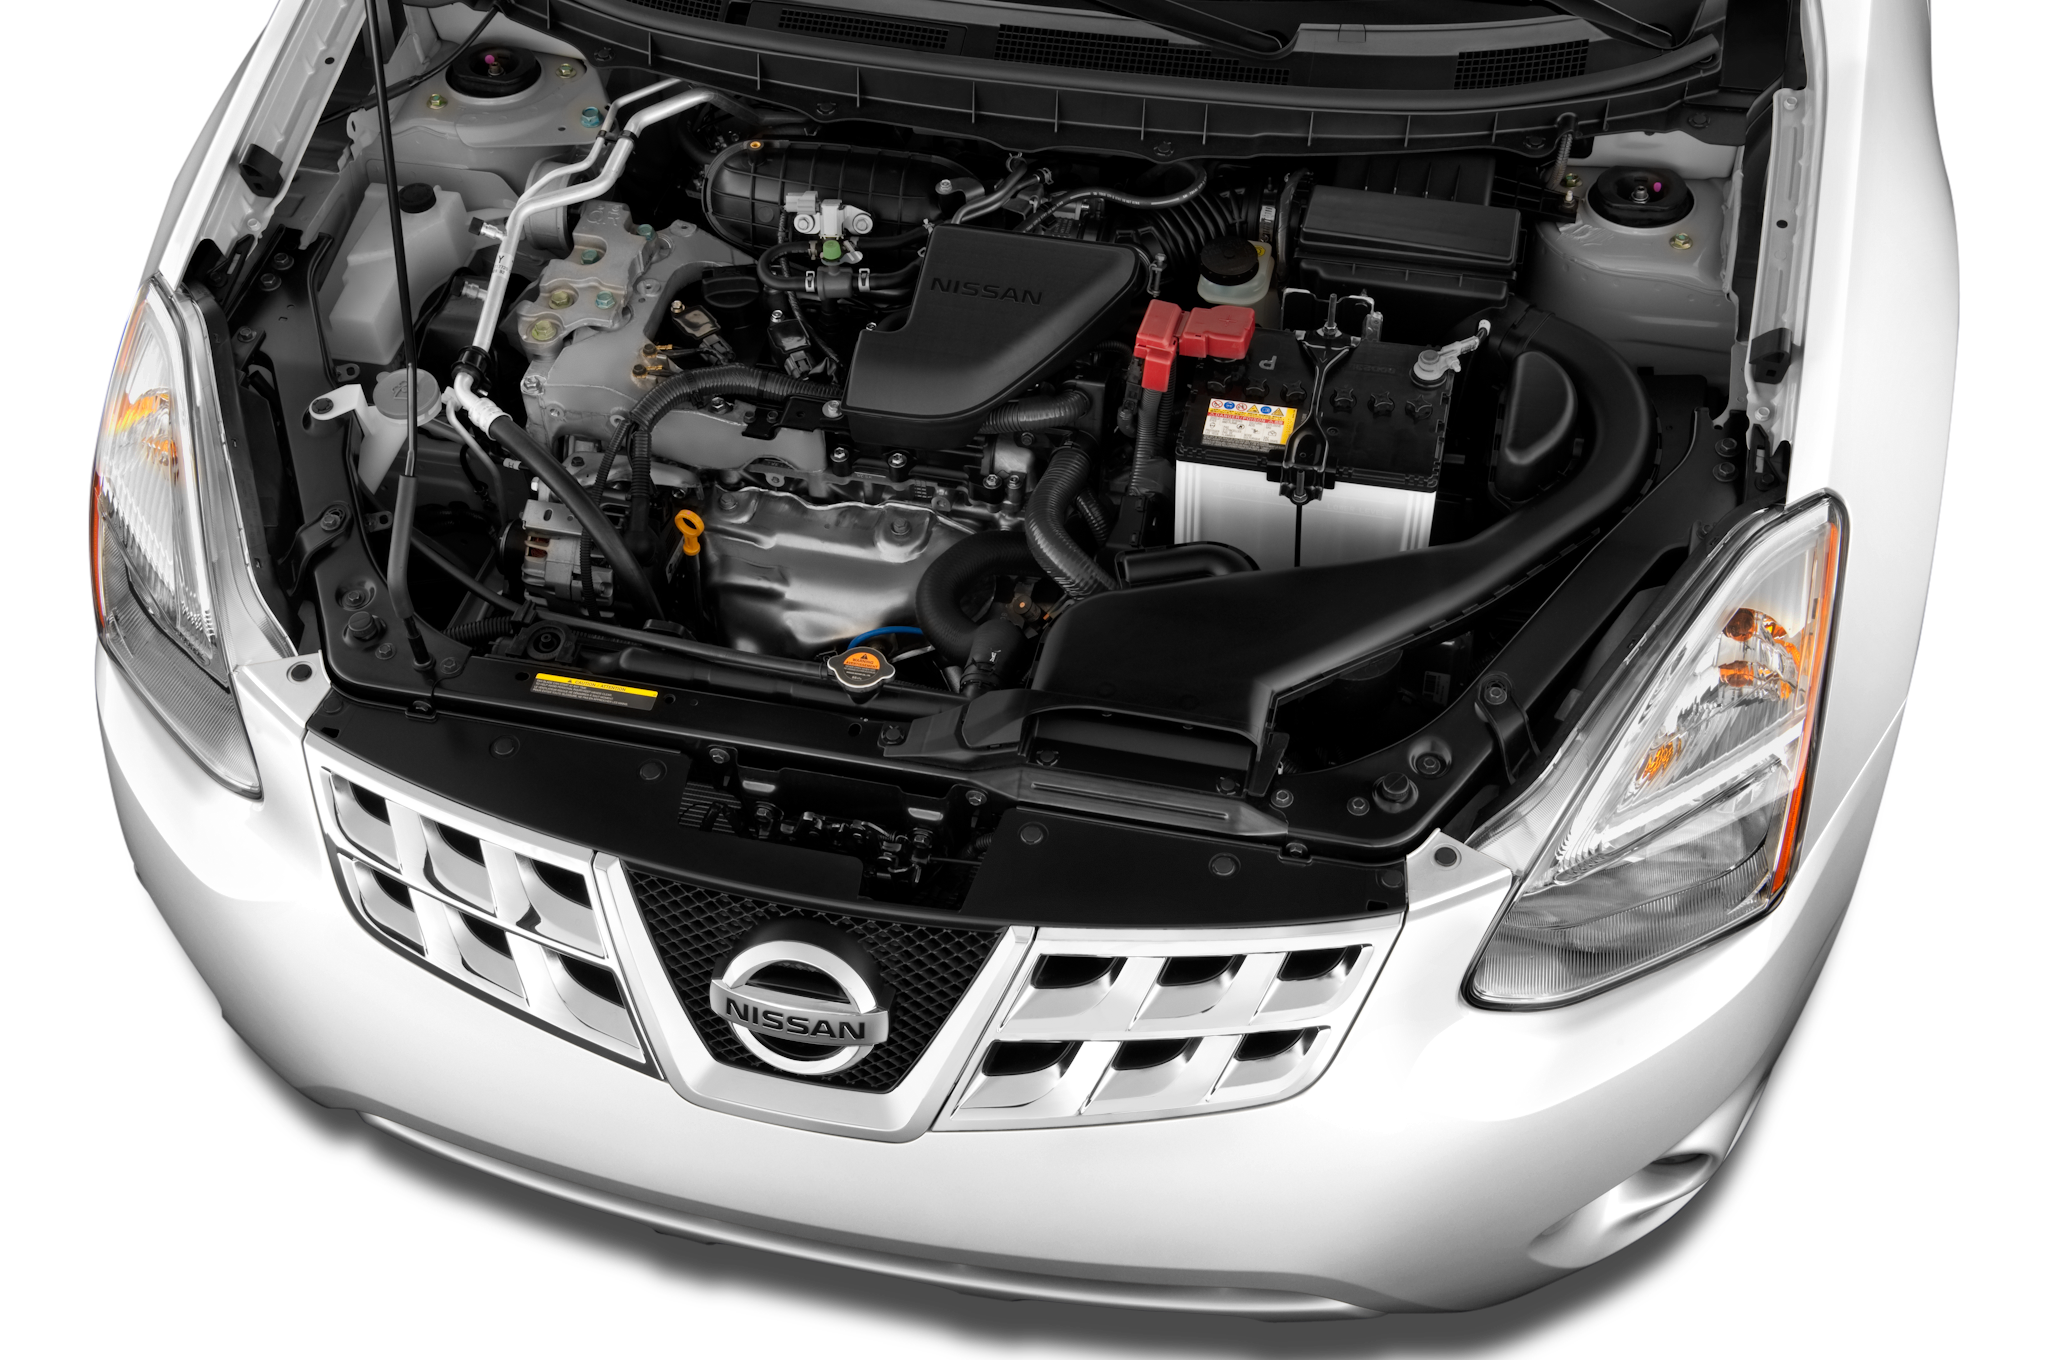 2014 nissan rogue wiring diagram m422 wiring harness, Wiring diagram